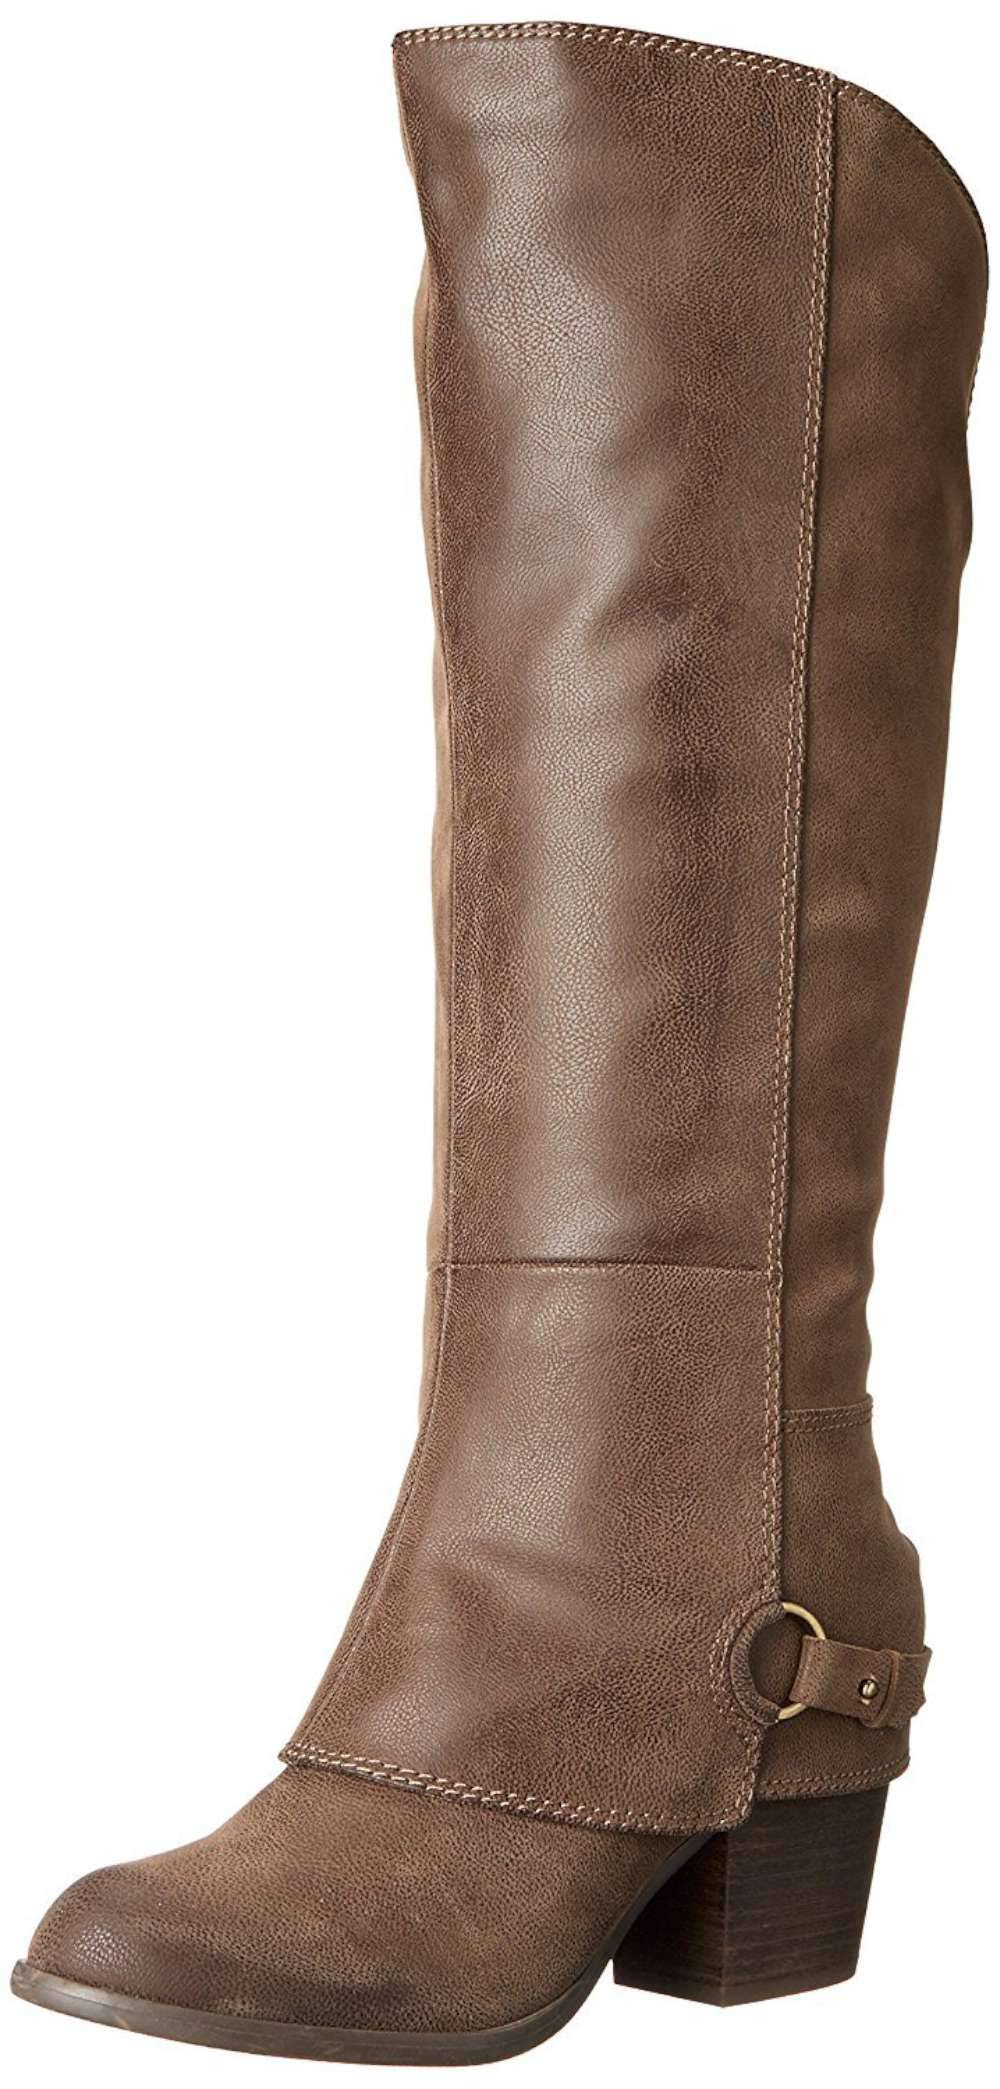 Fergalicious Women's Lexy Western Boot,Taupe, 6 M US